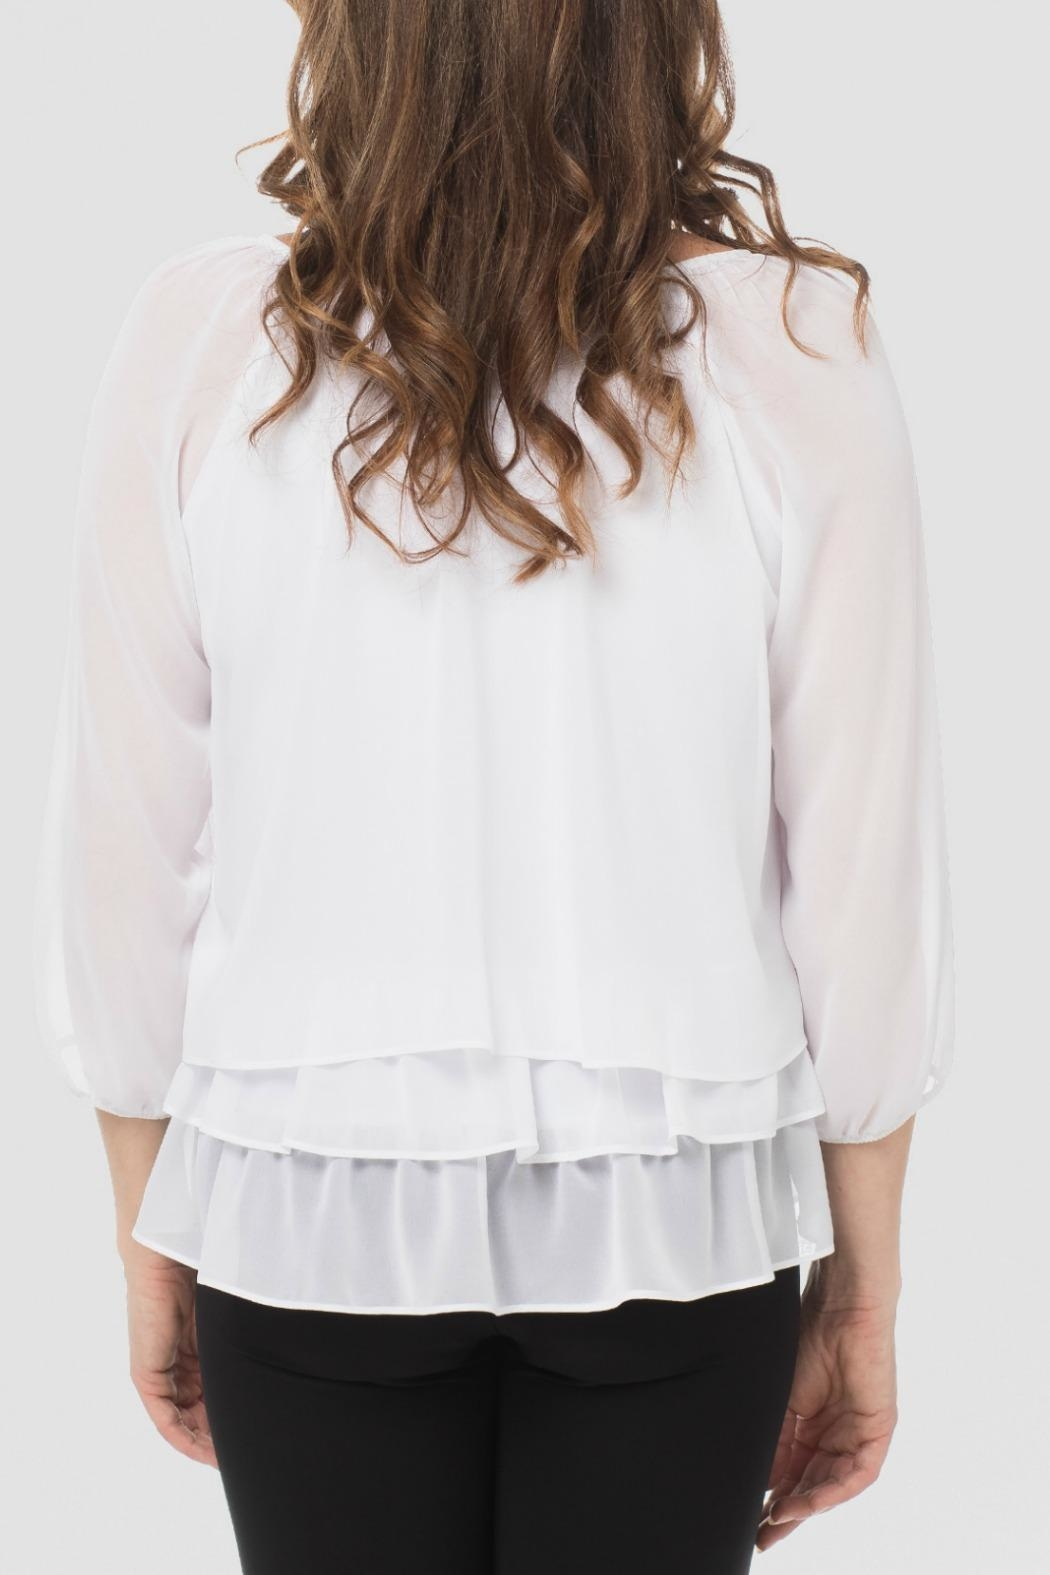 Joseph Ribkoff Floral White Top - Side Cropped Image